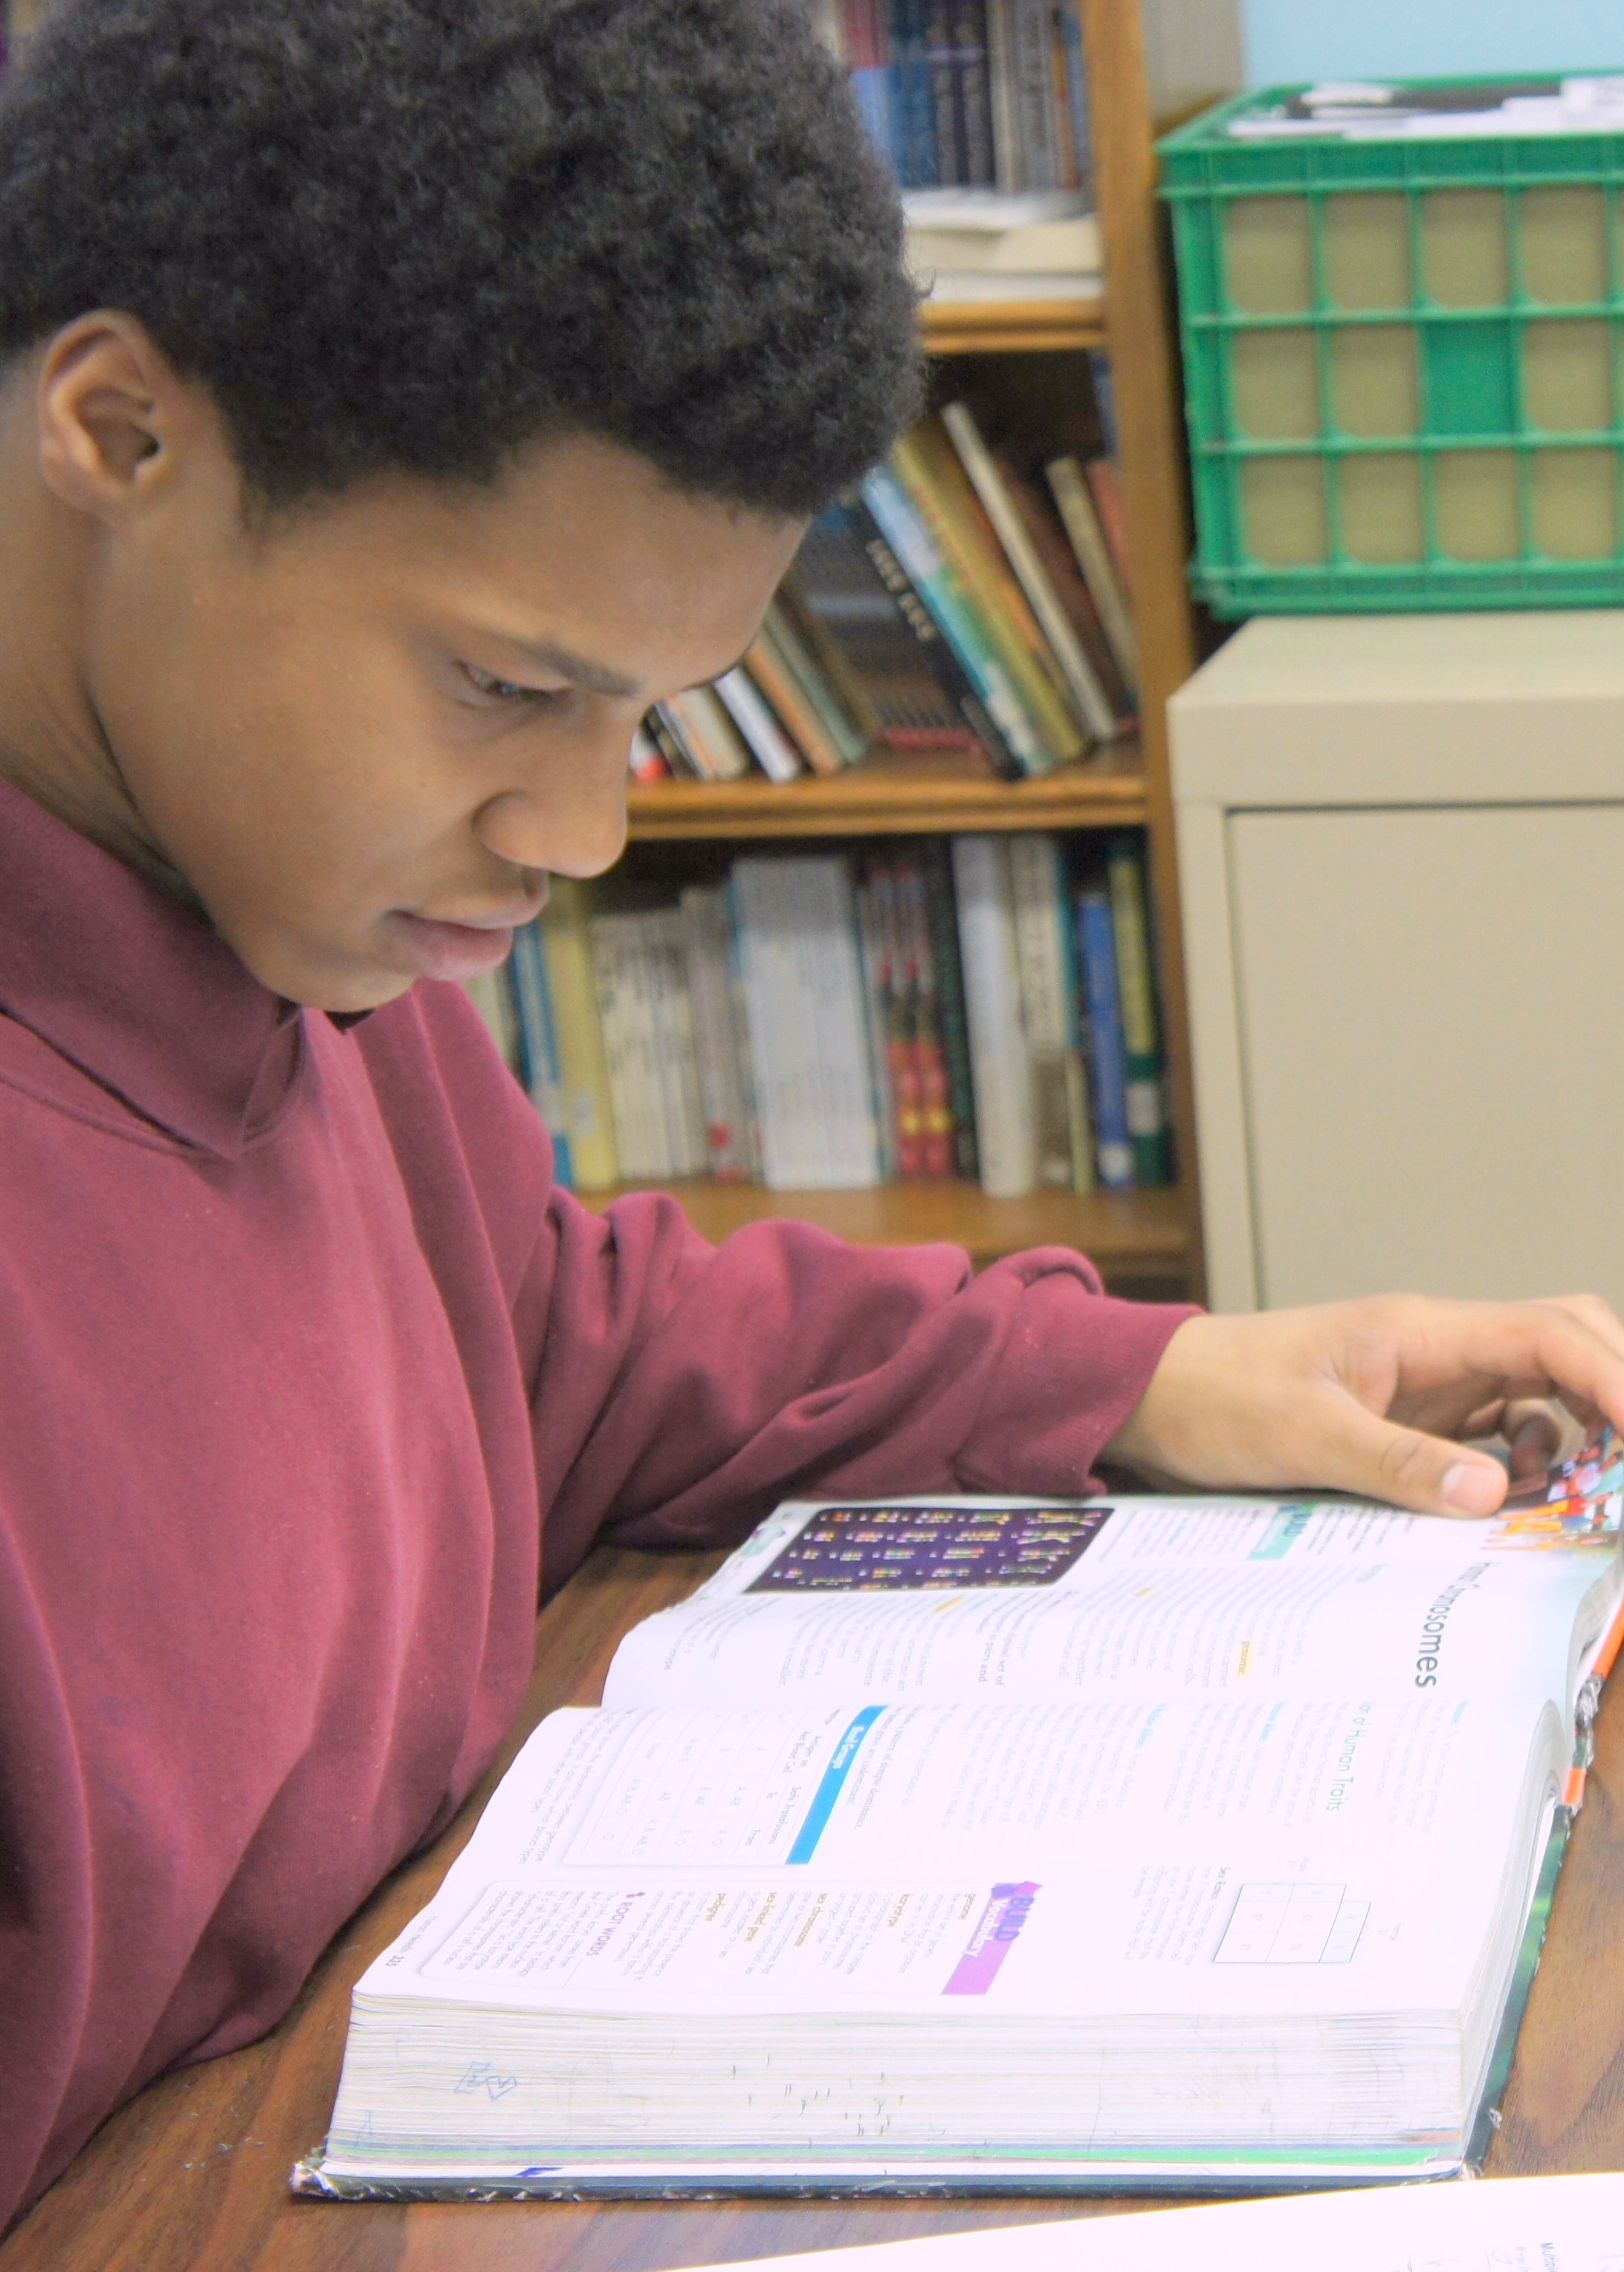 Phoenix helps students improve their emotional control, thought processes and behavior.